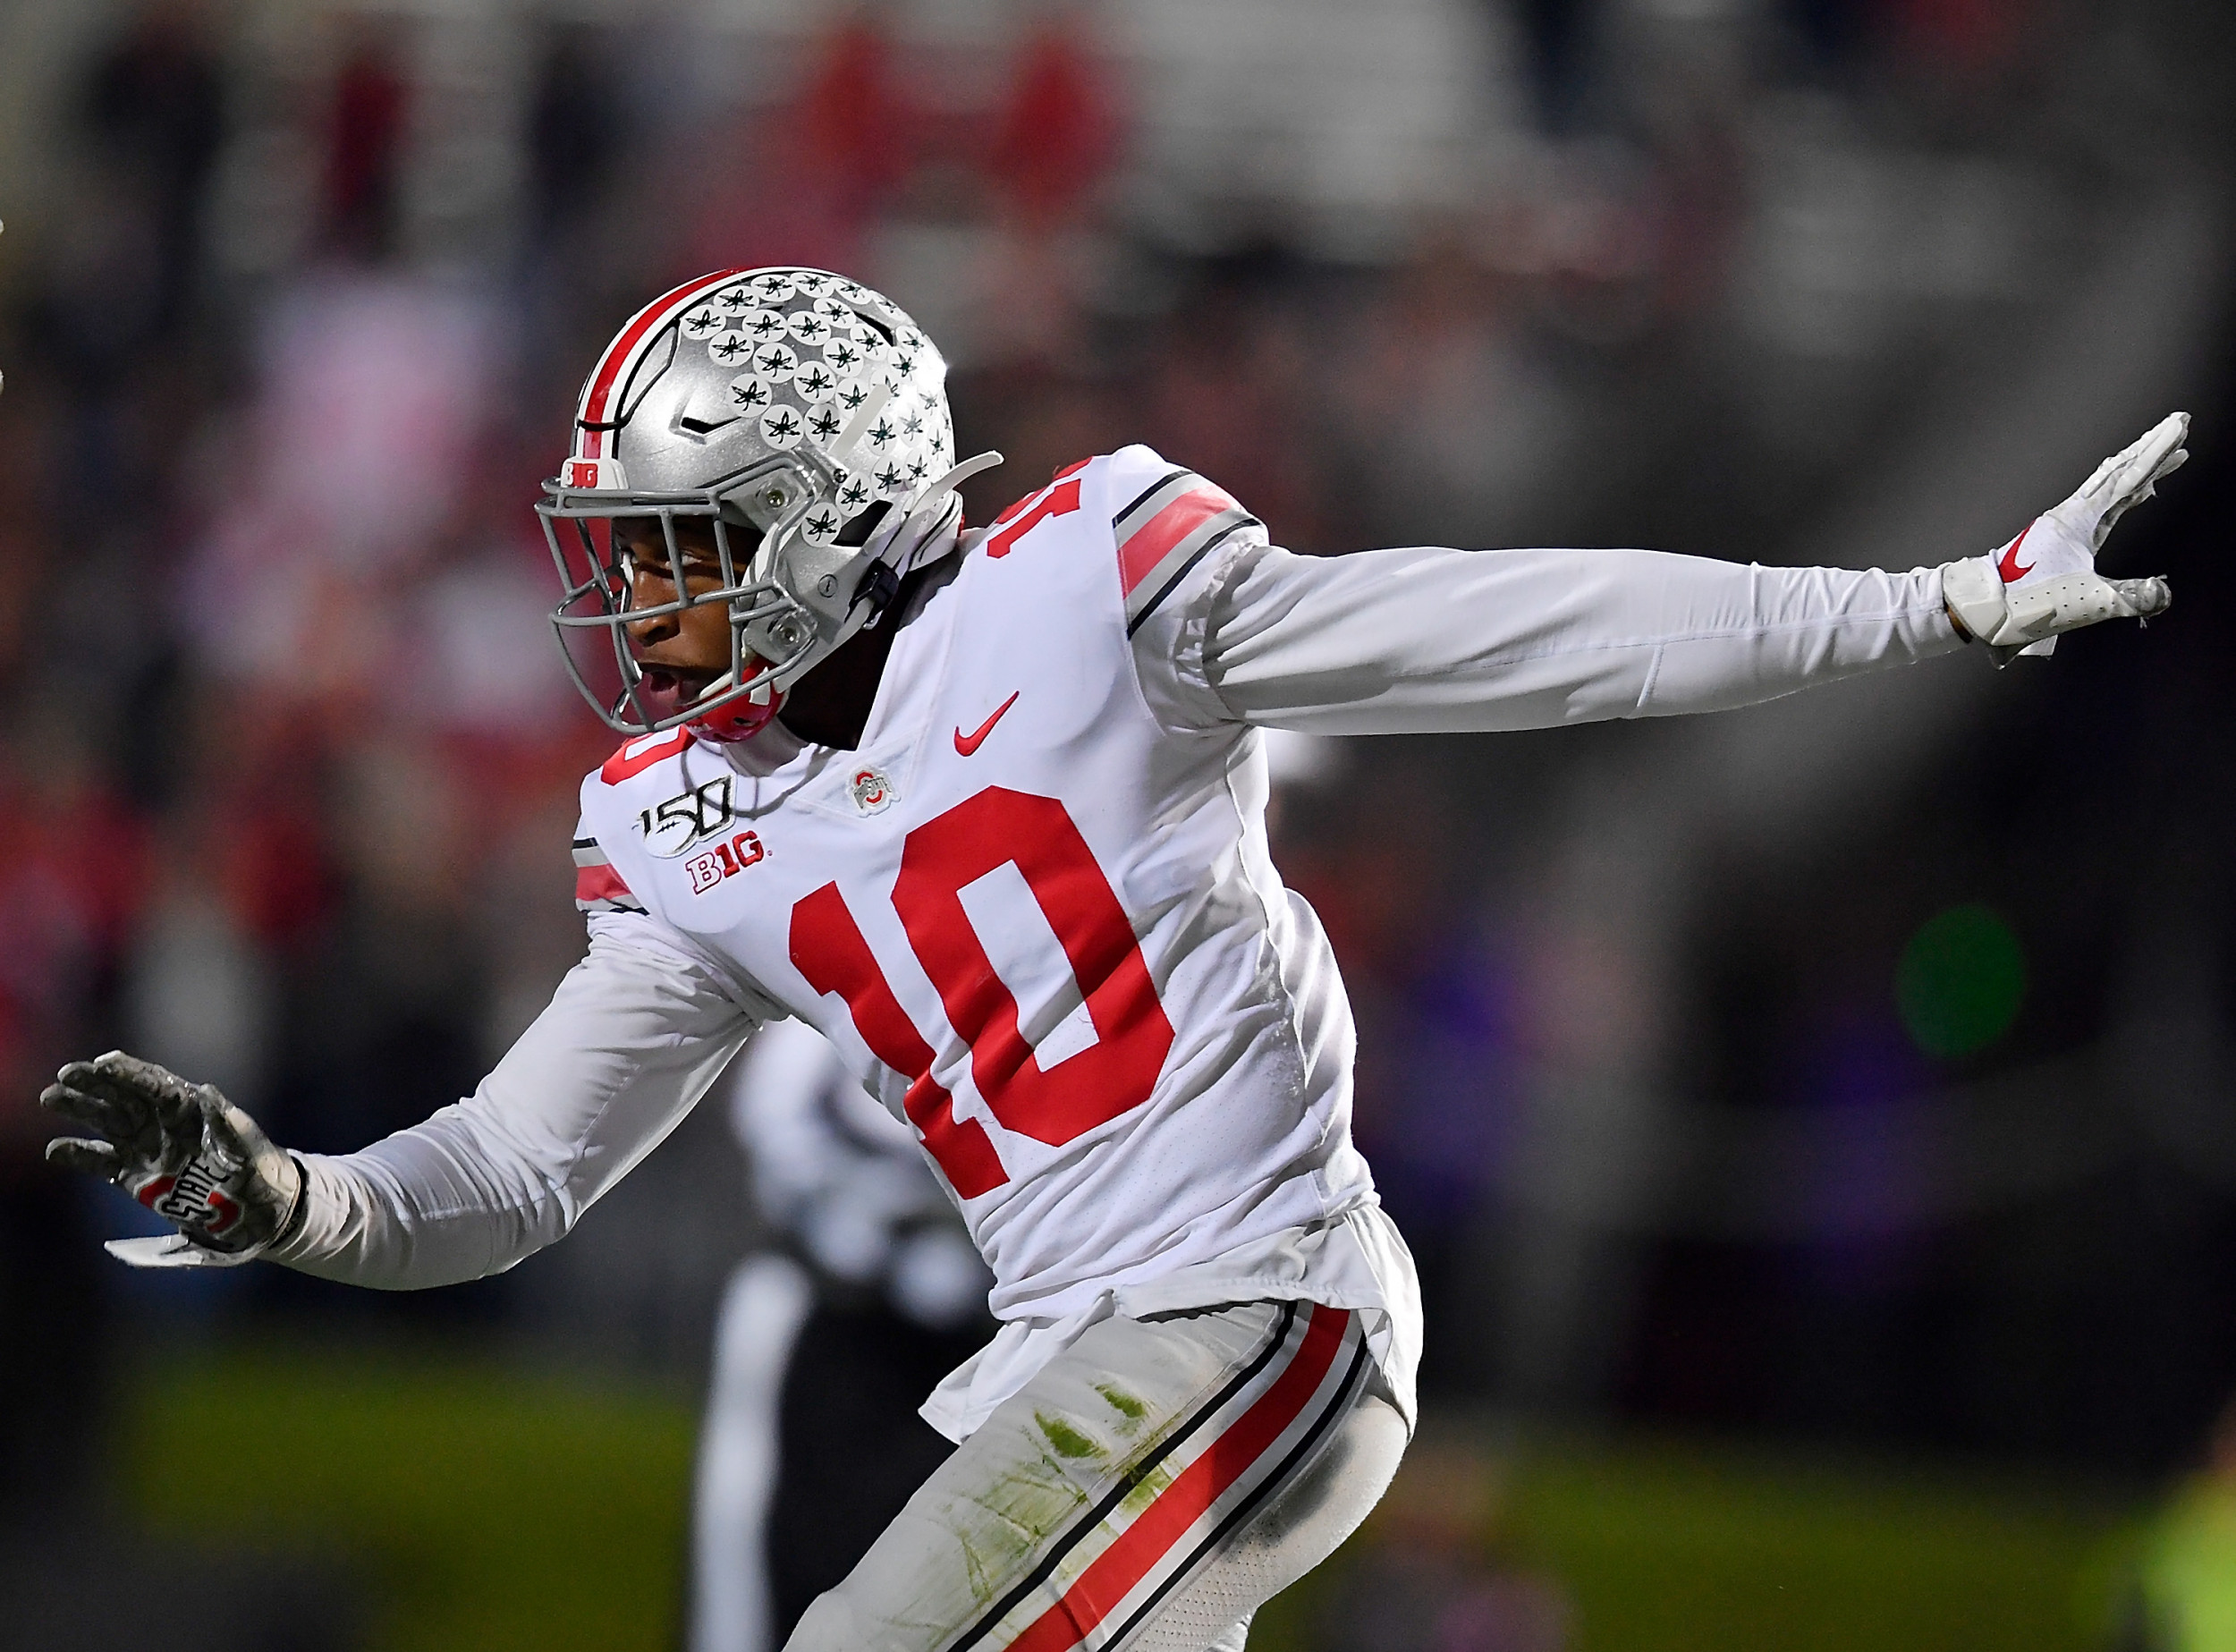 Ohio State Players Amir Riep And Jahsen Wint Charged With Rape And